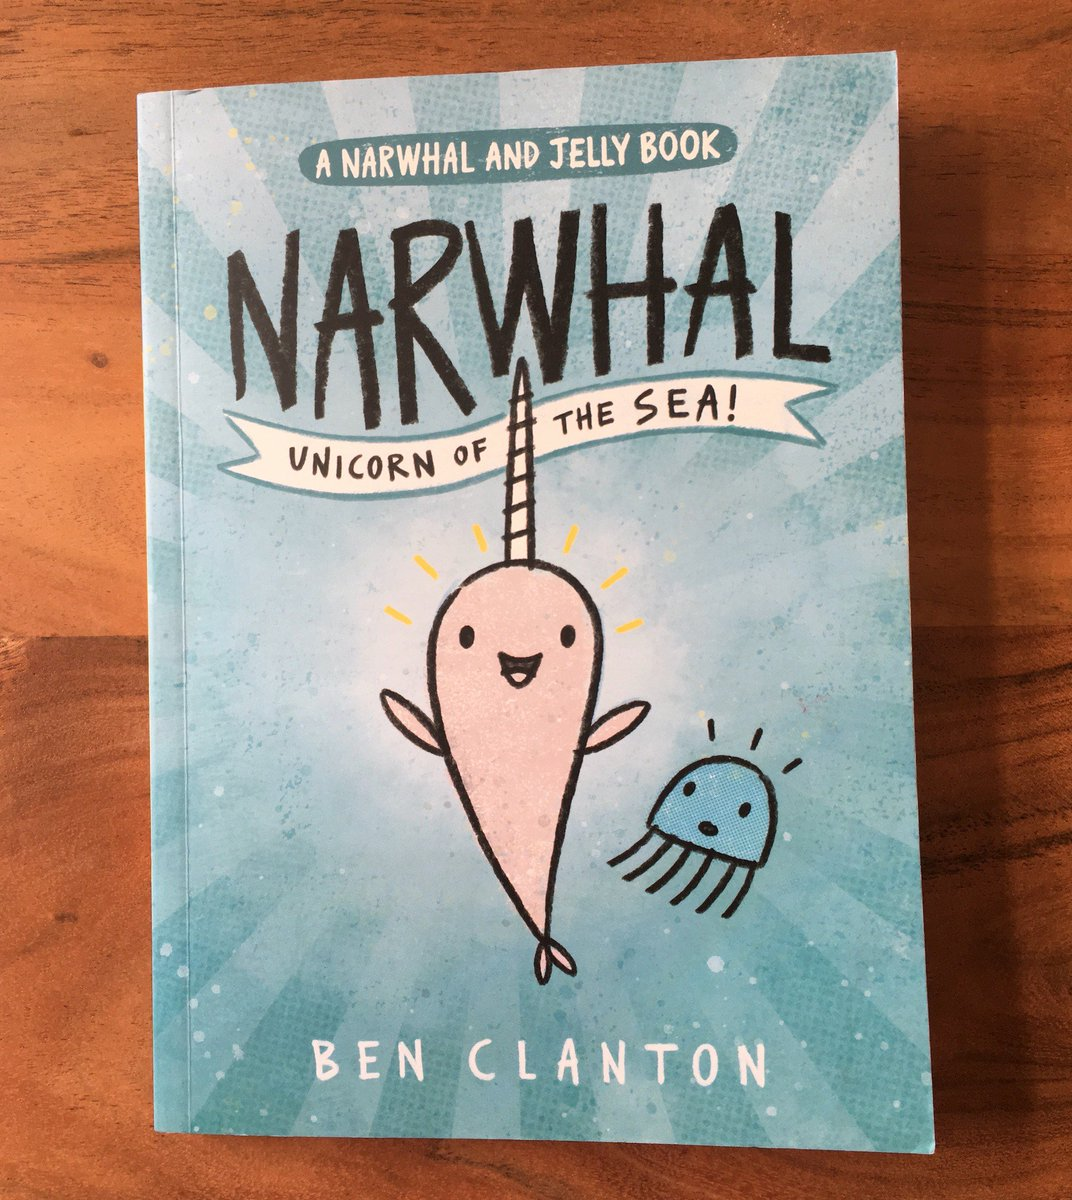 Wandering Educators On Twitter Narwhal Unicorn Of The Sea Book Review Https T Co Nudlobftxd Via North Something